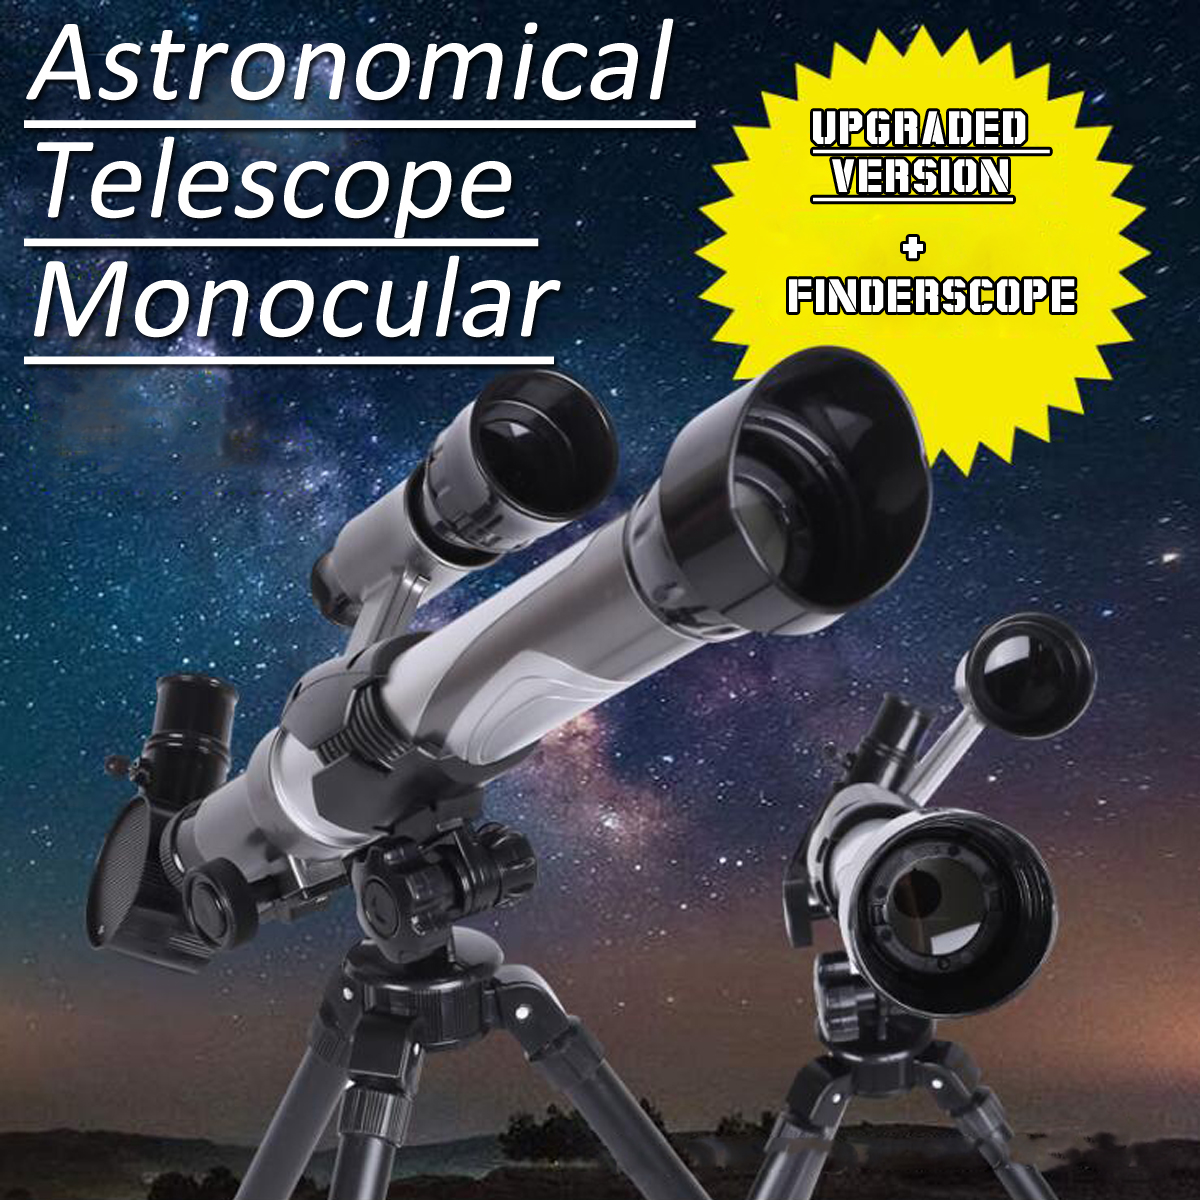 20-40X Astronomical Telescope Monocular Tripod Multi-purpose Bird Watching Monocular For Children